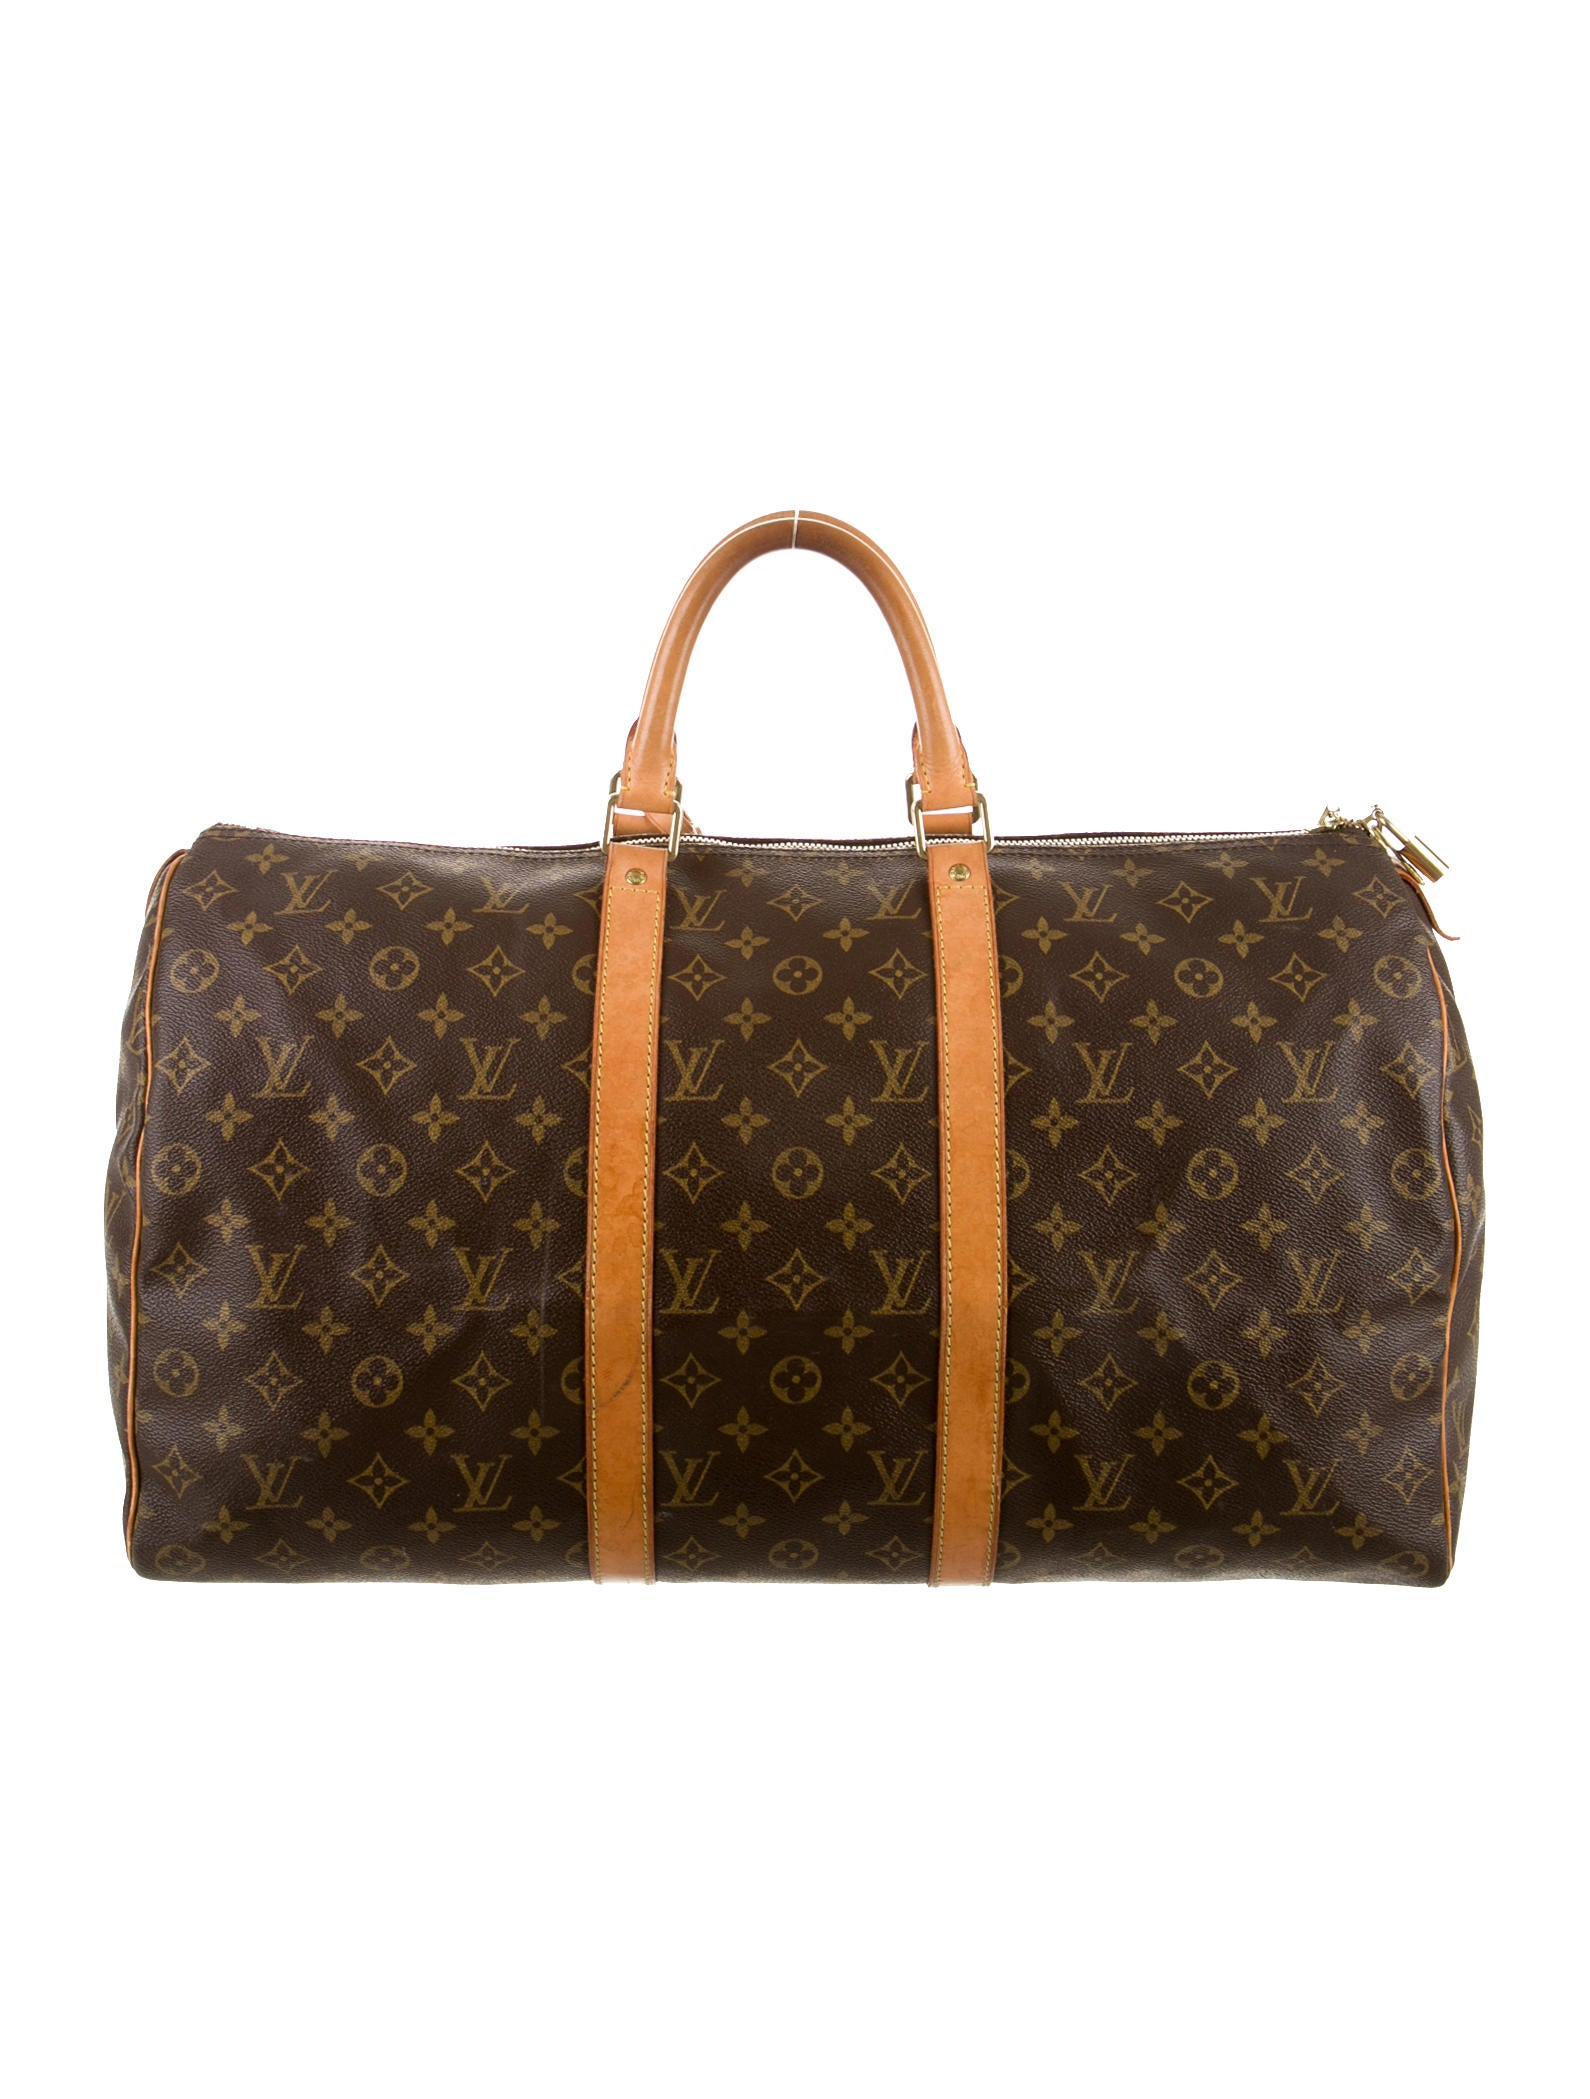 louis vuitton monogram keepall 55 handbags lou63895 the realreal. Black Bedroom Furniture Sets. Home Design Ideas